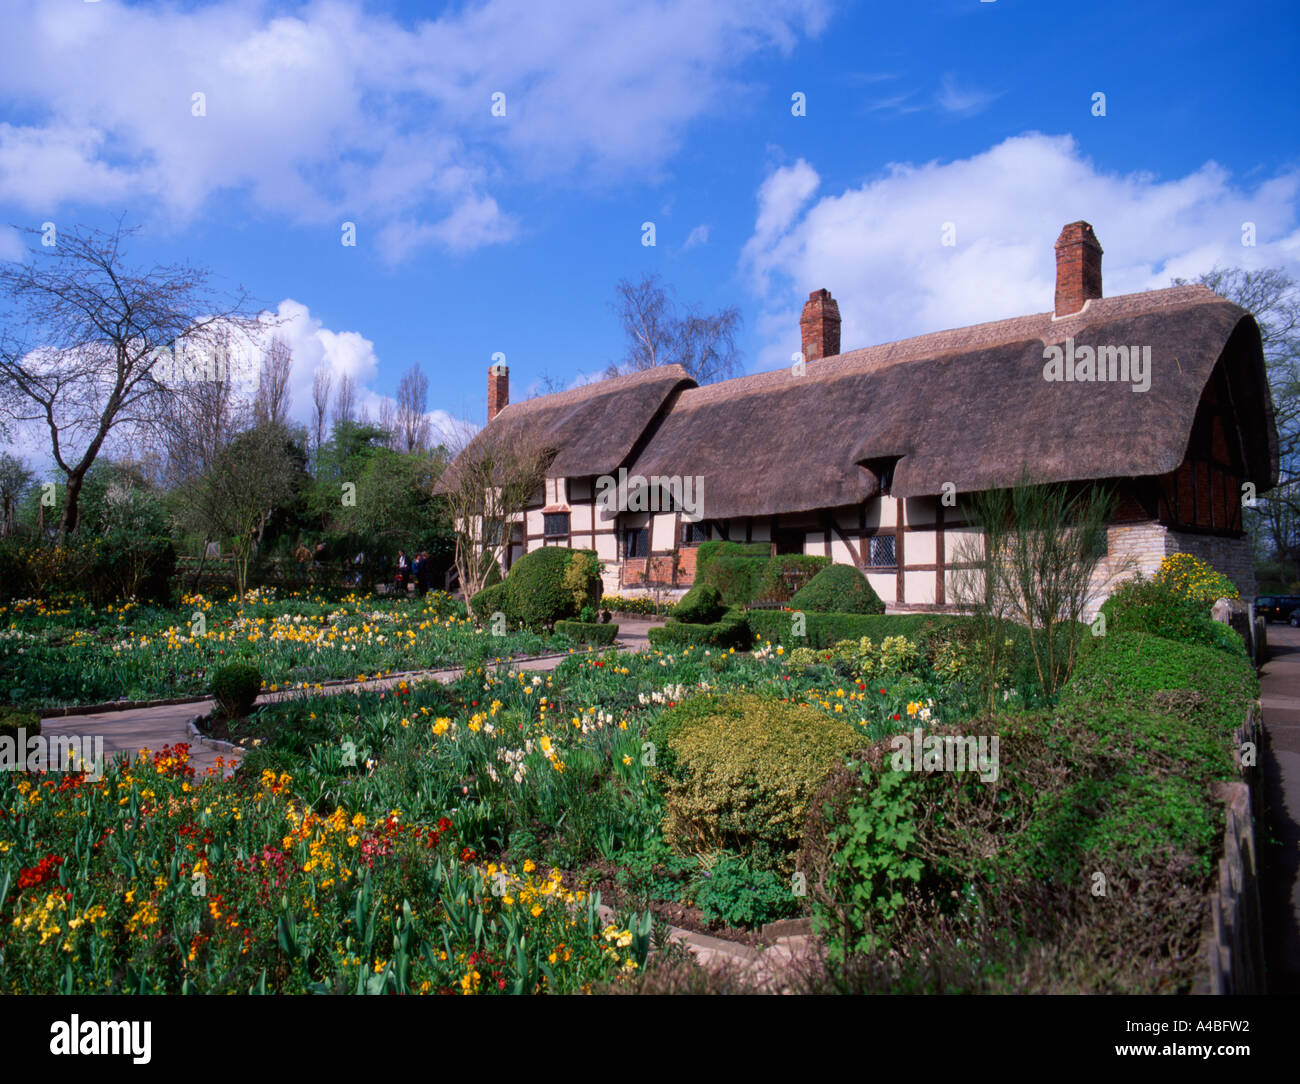 Elizabethan Cottage Stock Photos & Elizabethan Cottage